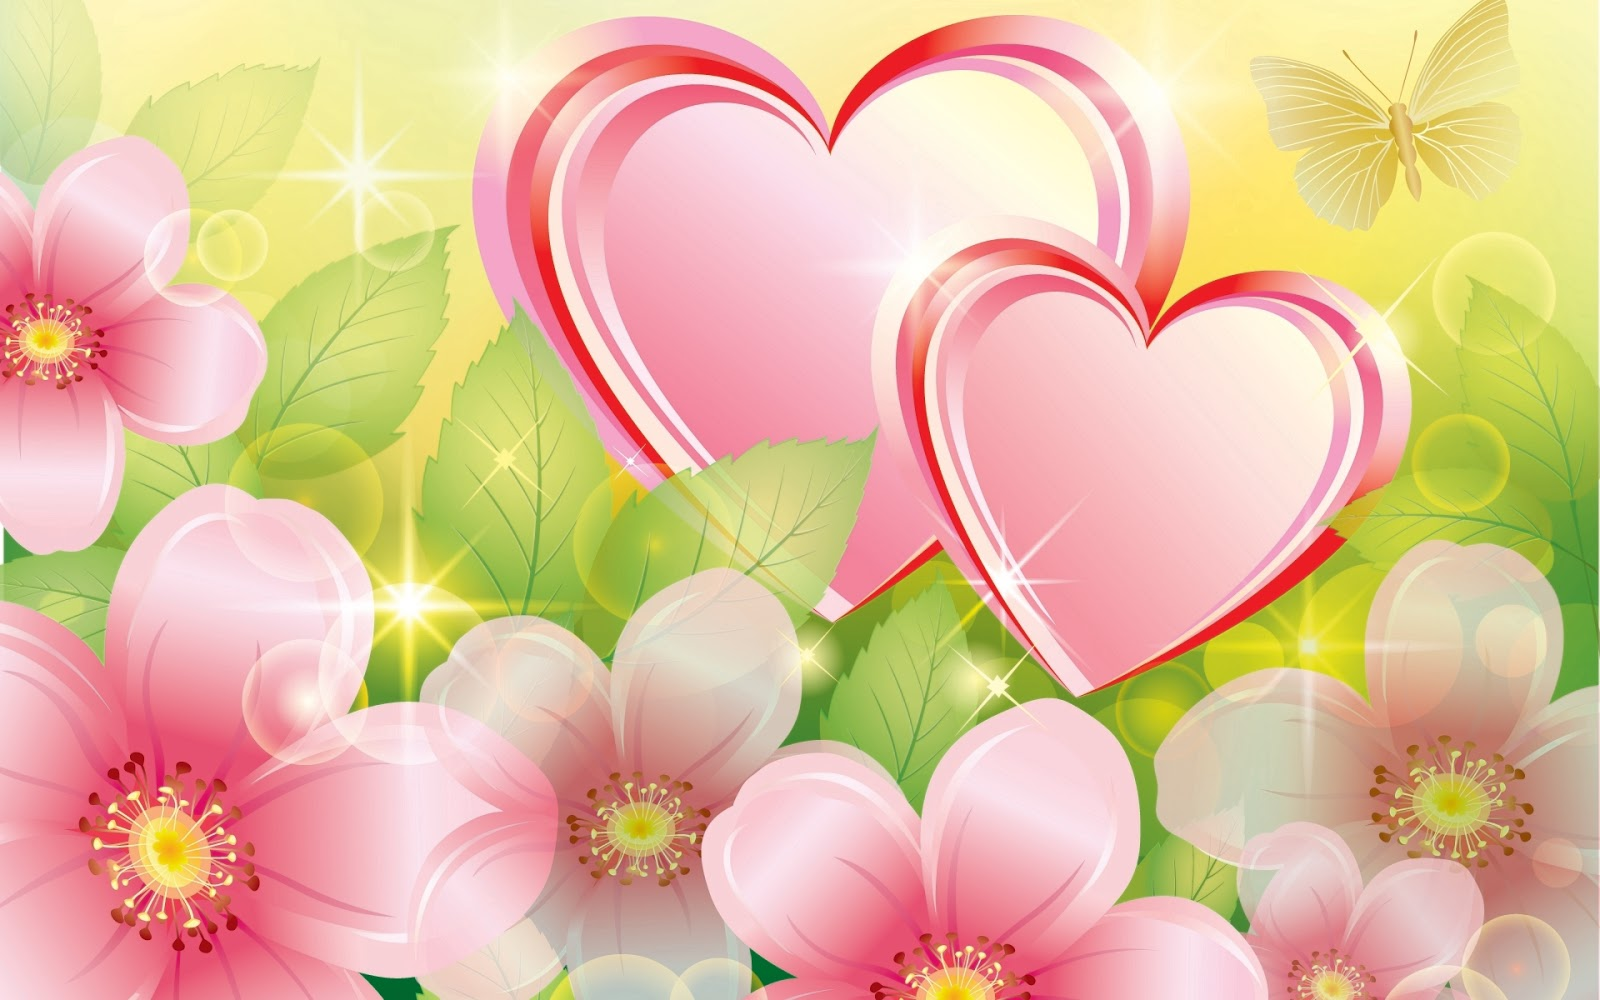 Cute Love Wallpapers Collection For Free